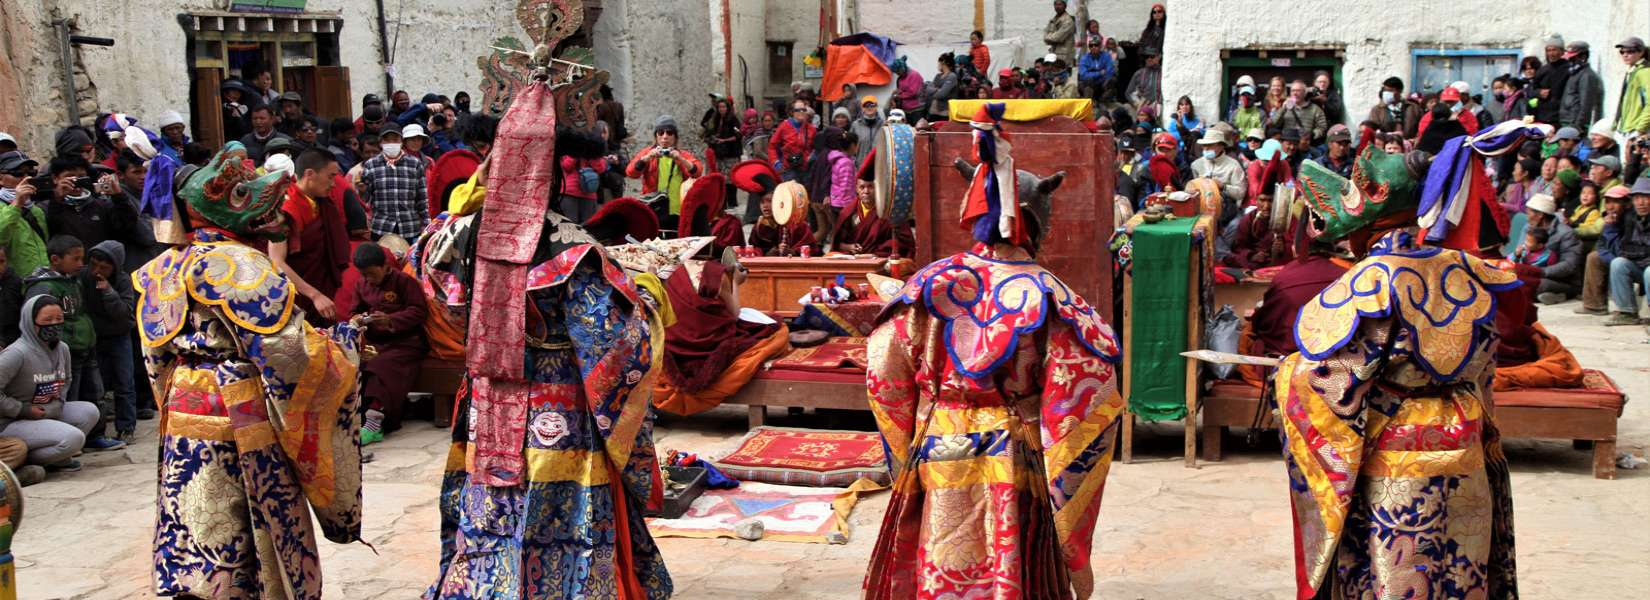 Mask dance performed by monks at Mustang Tiji Festival